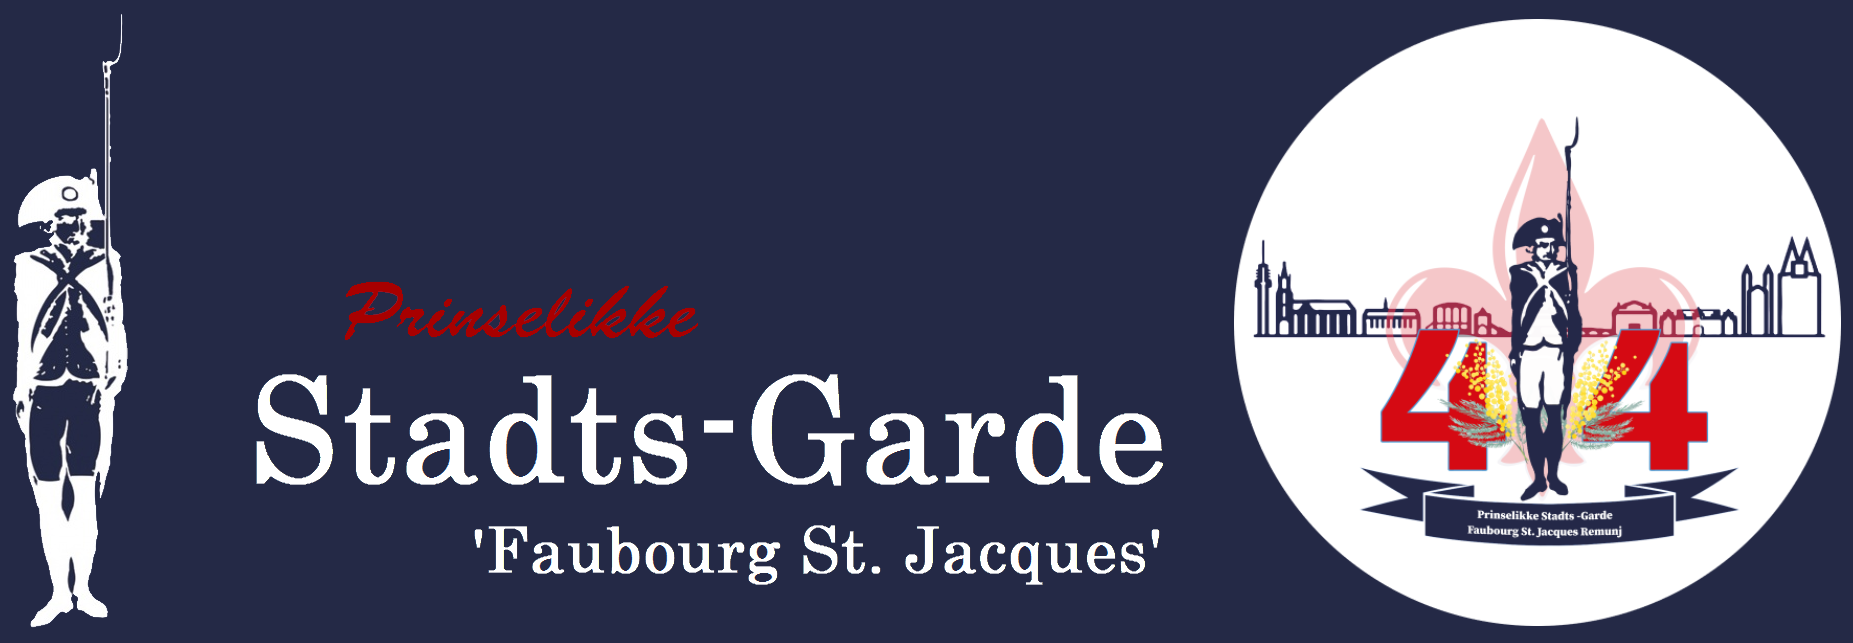 Prinselikke Stadts-Garde Faubourg St. Jacques